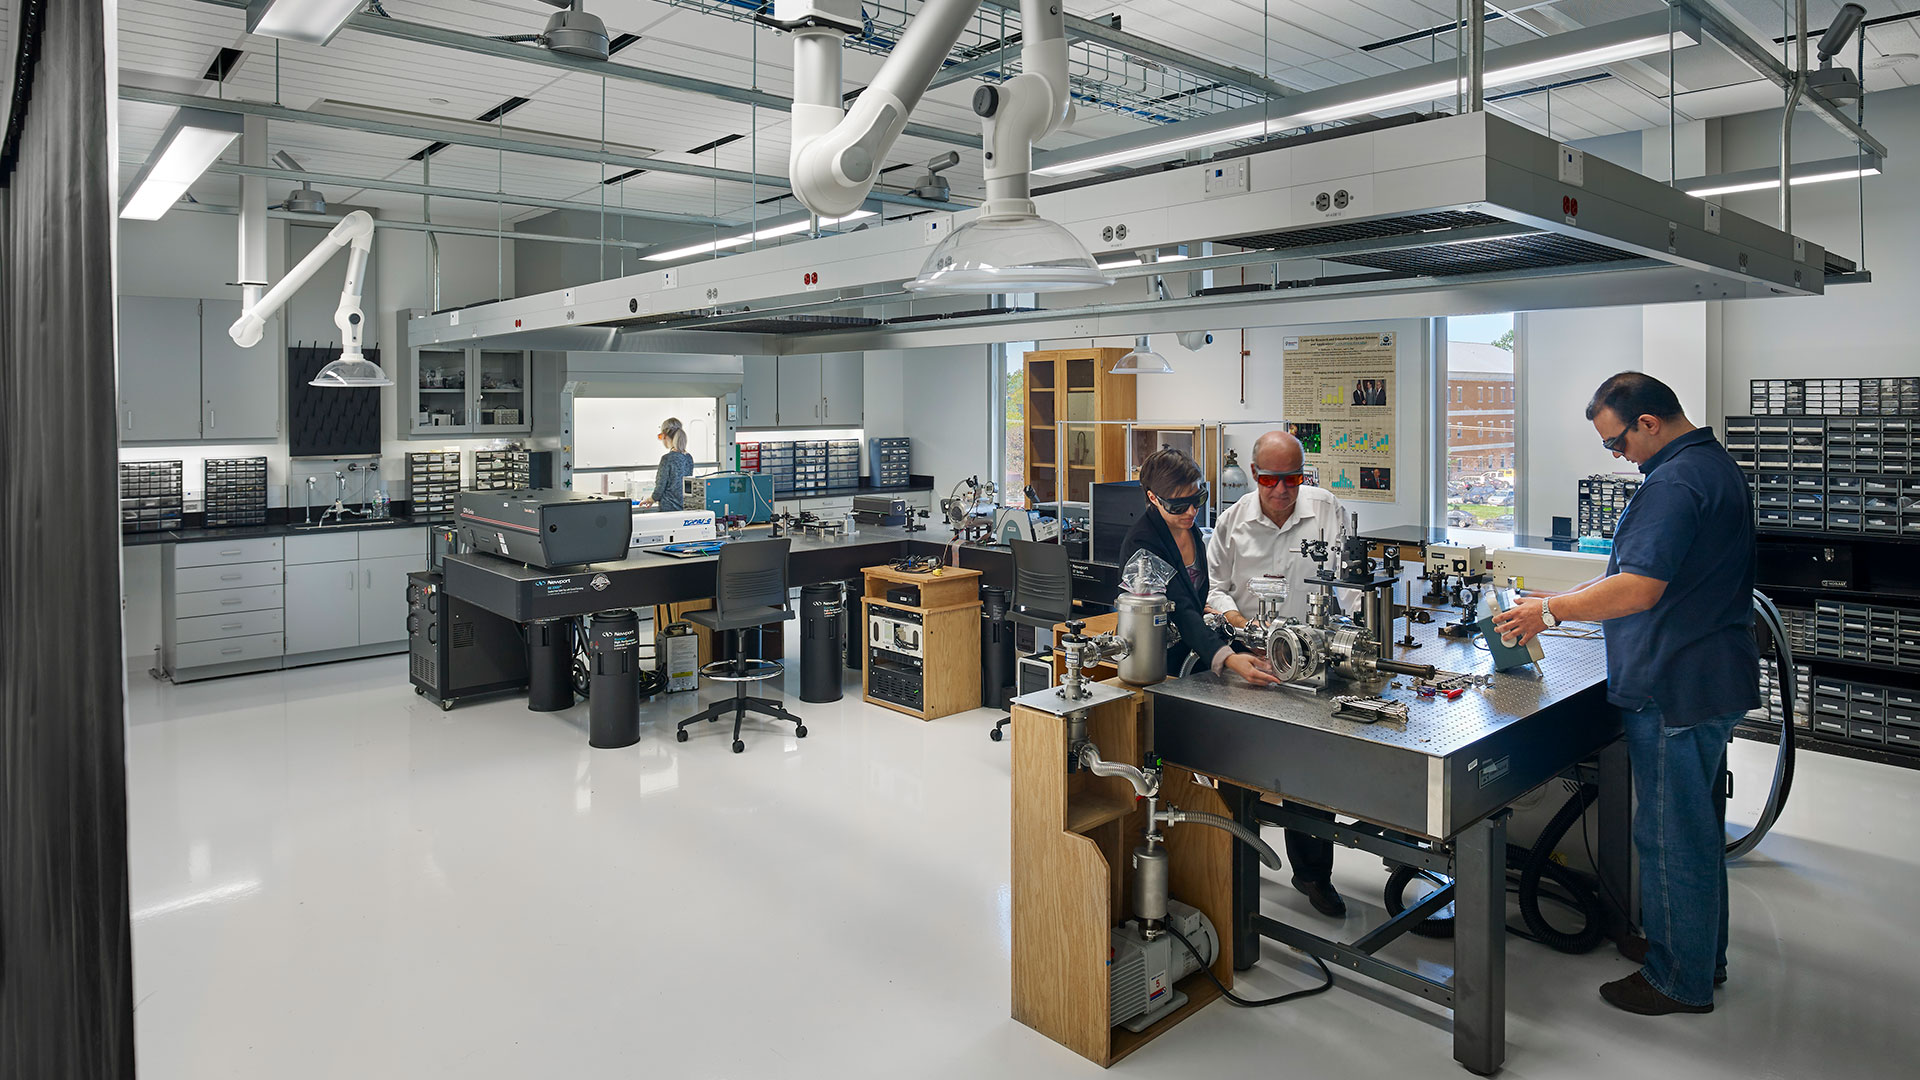 11-dsu-optical-science-center-for-applied-research-leed-platinum-research-laboratory-architectural-design-optics-laboratory-exhaust-snorkel.jpg